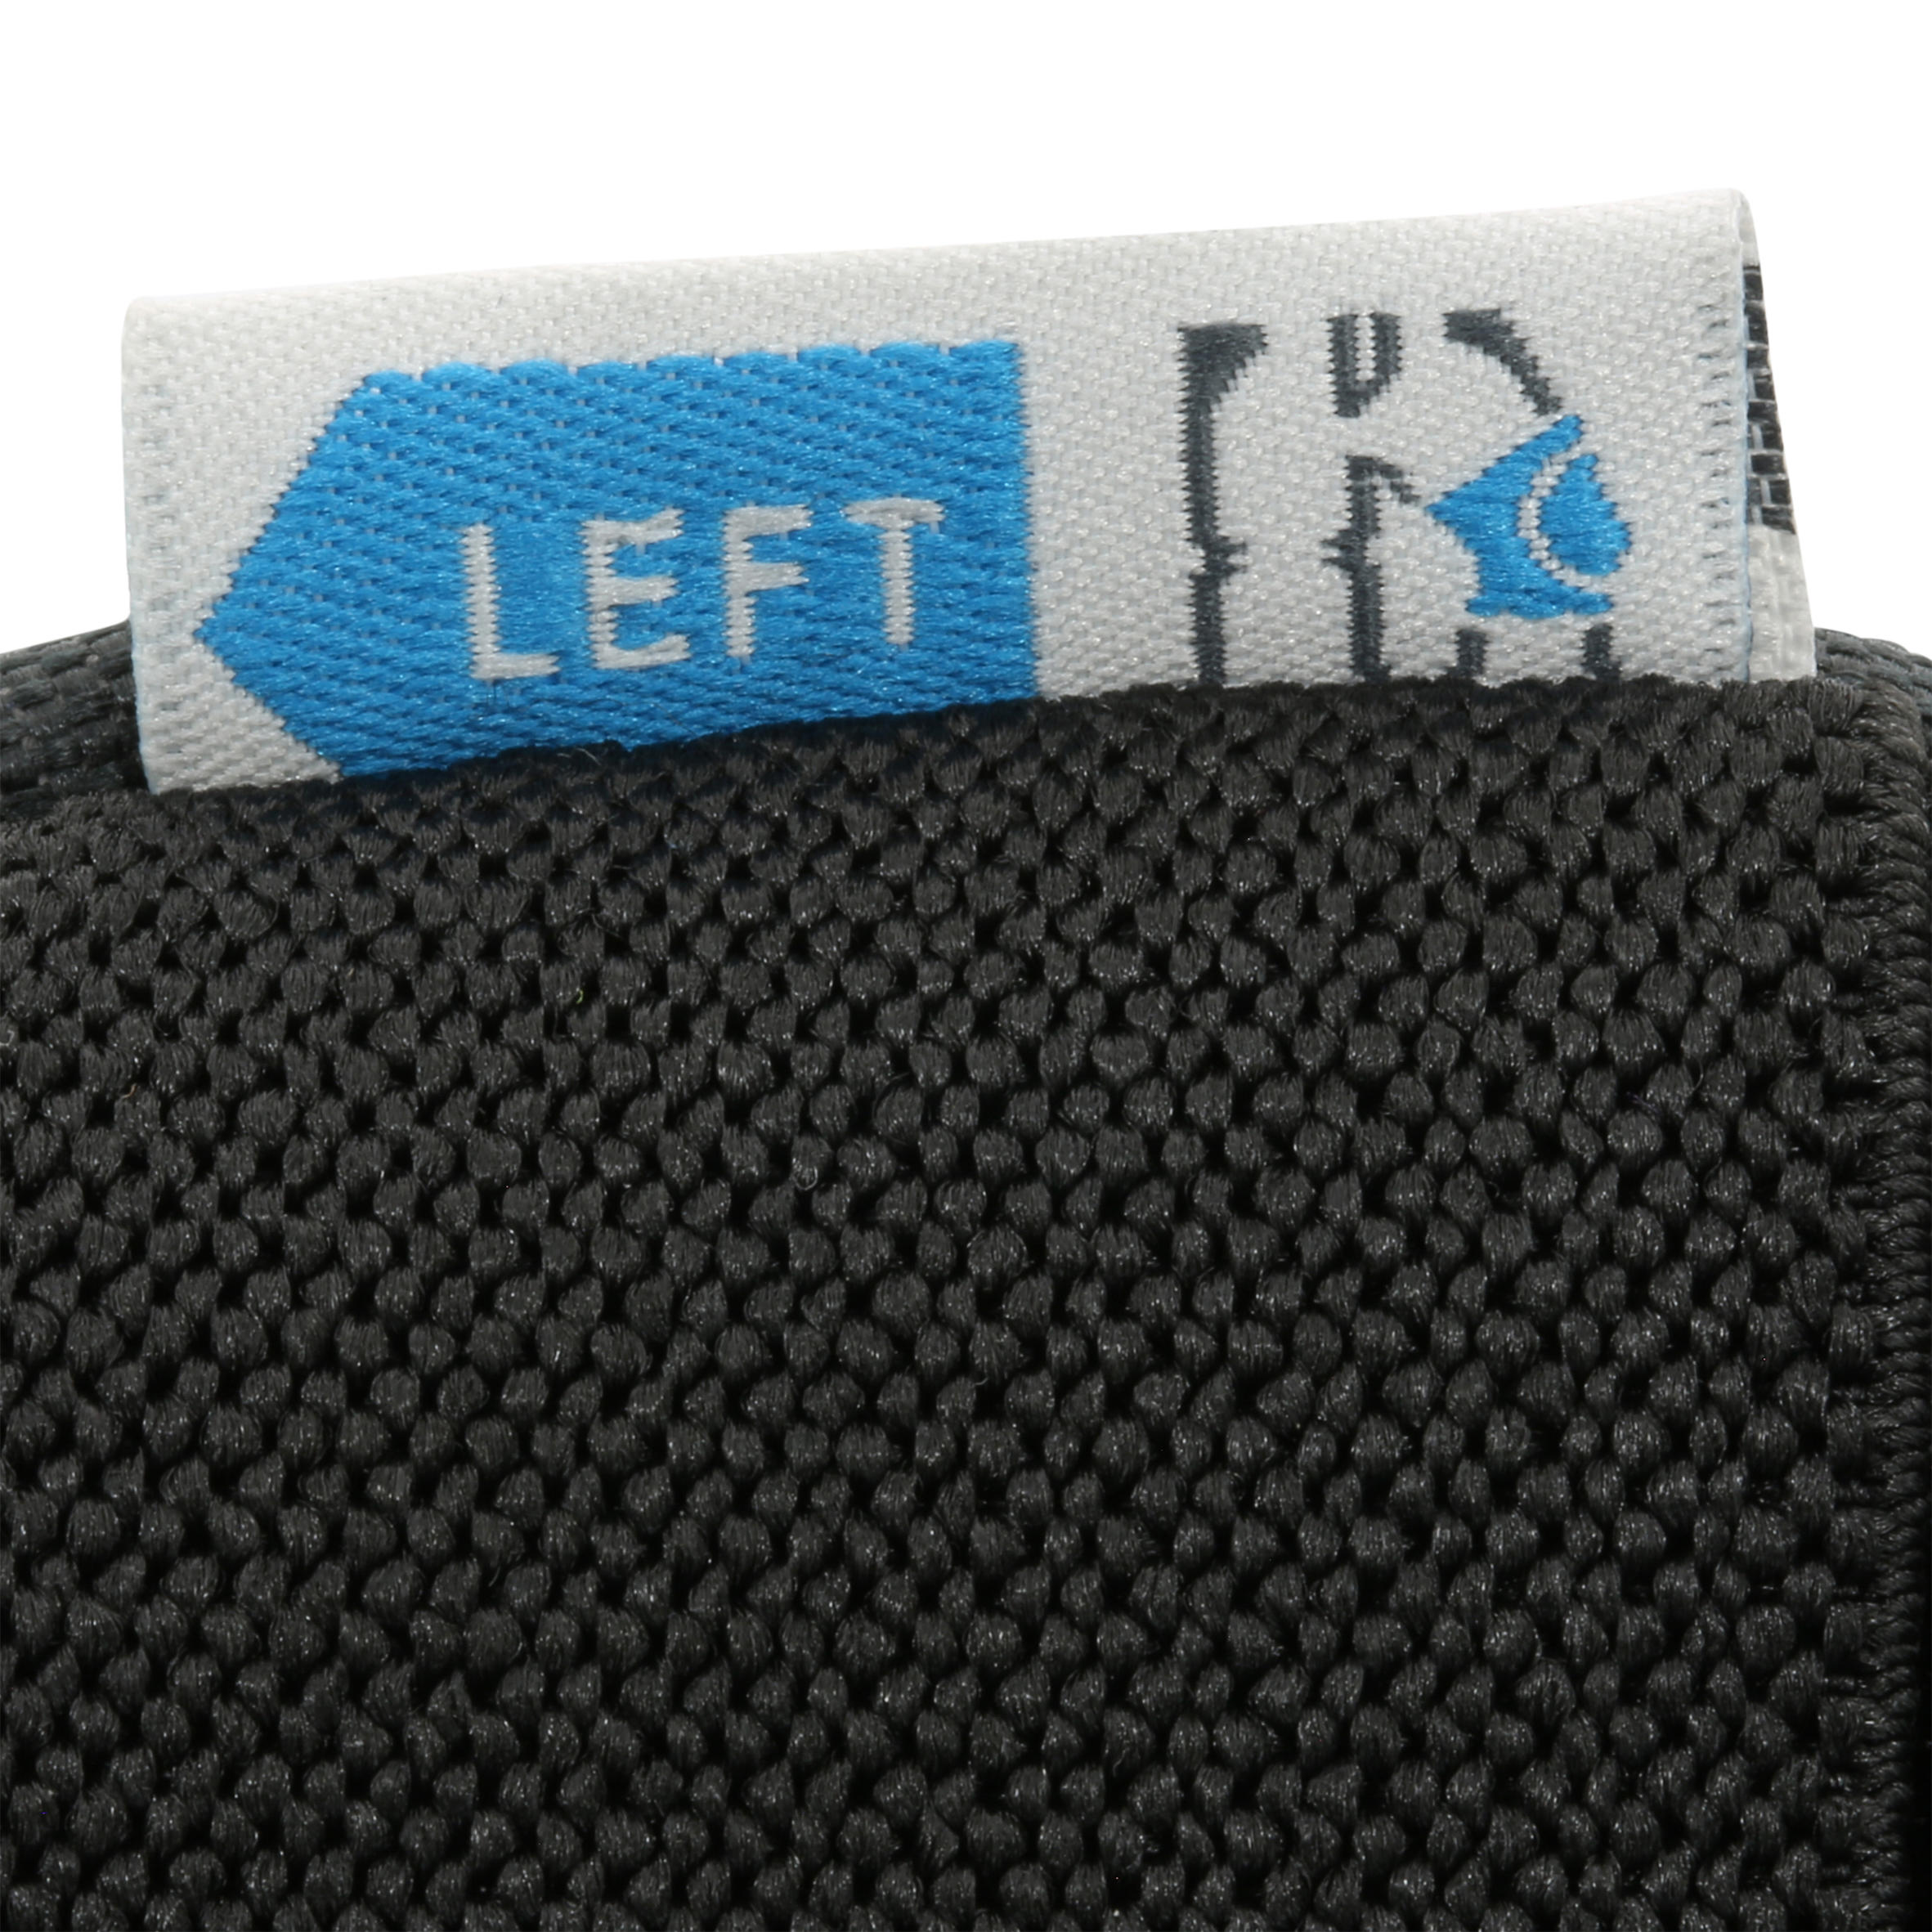 FIT500 Adult Inline Skating Skateboarding Scootering Protectors x 3 - Black/Blue